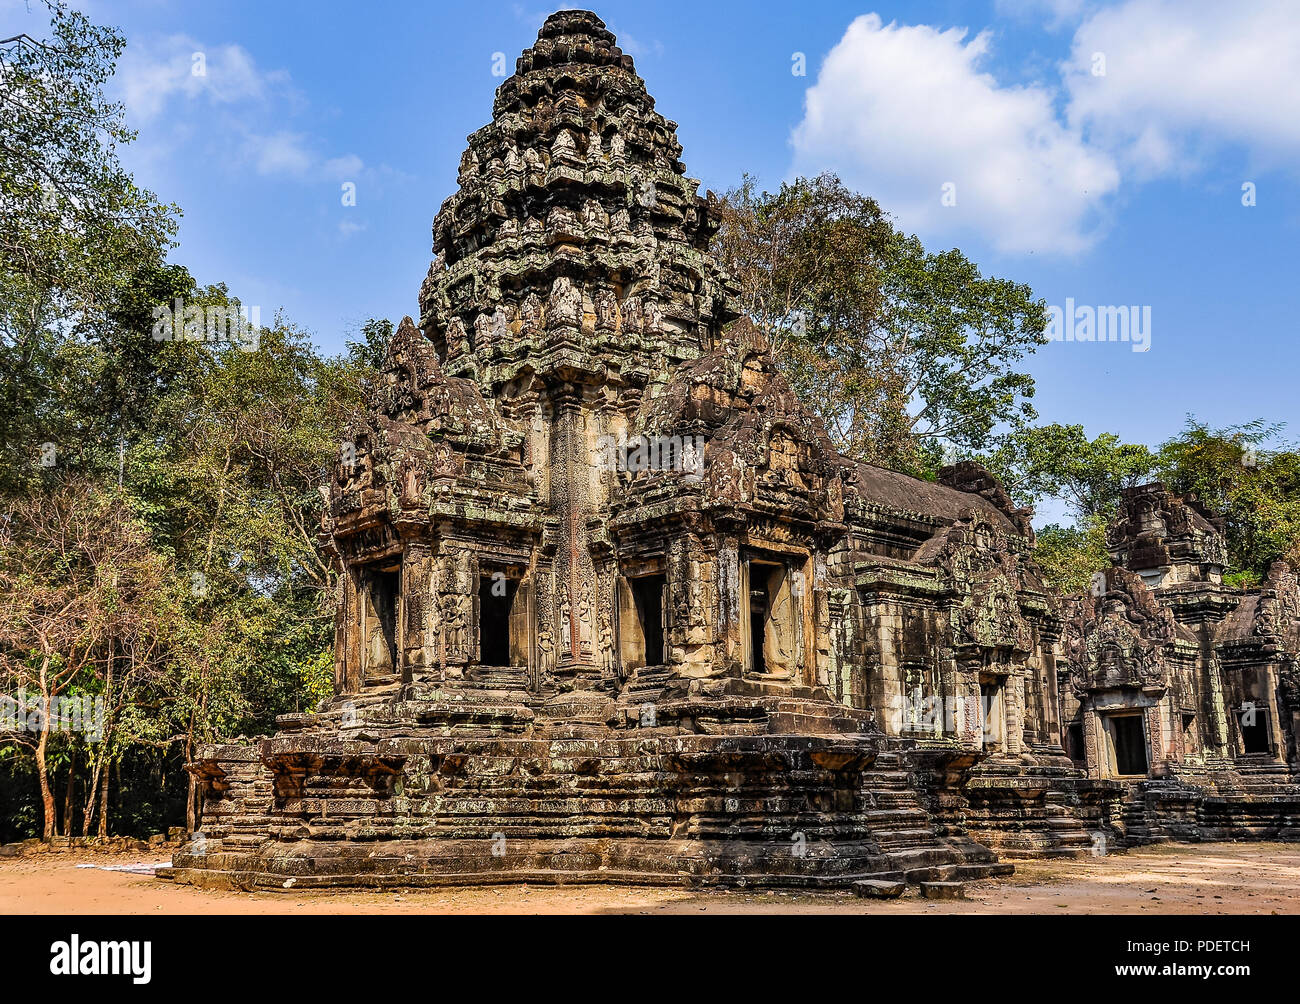 Temple in the ruins of Angkor Wat, Cambodia - Stock Image